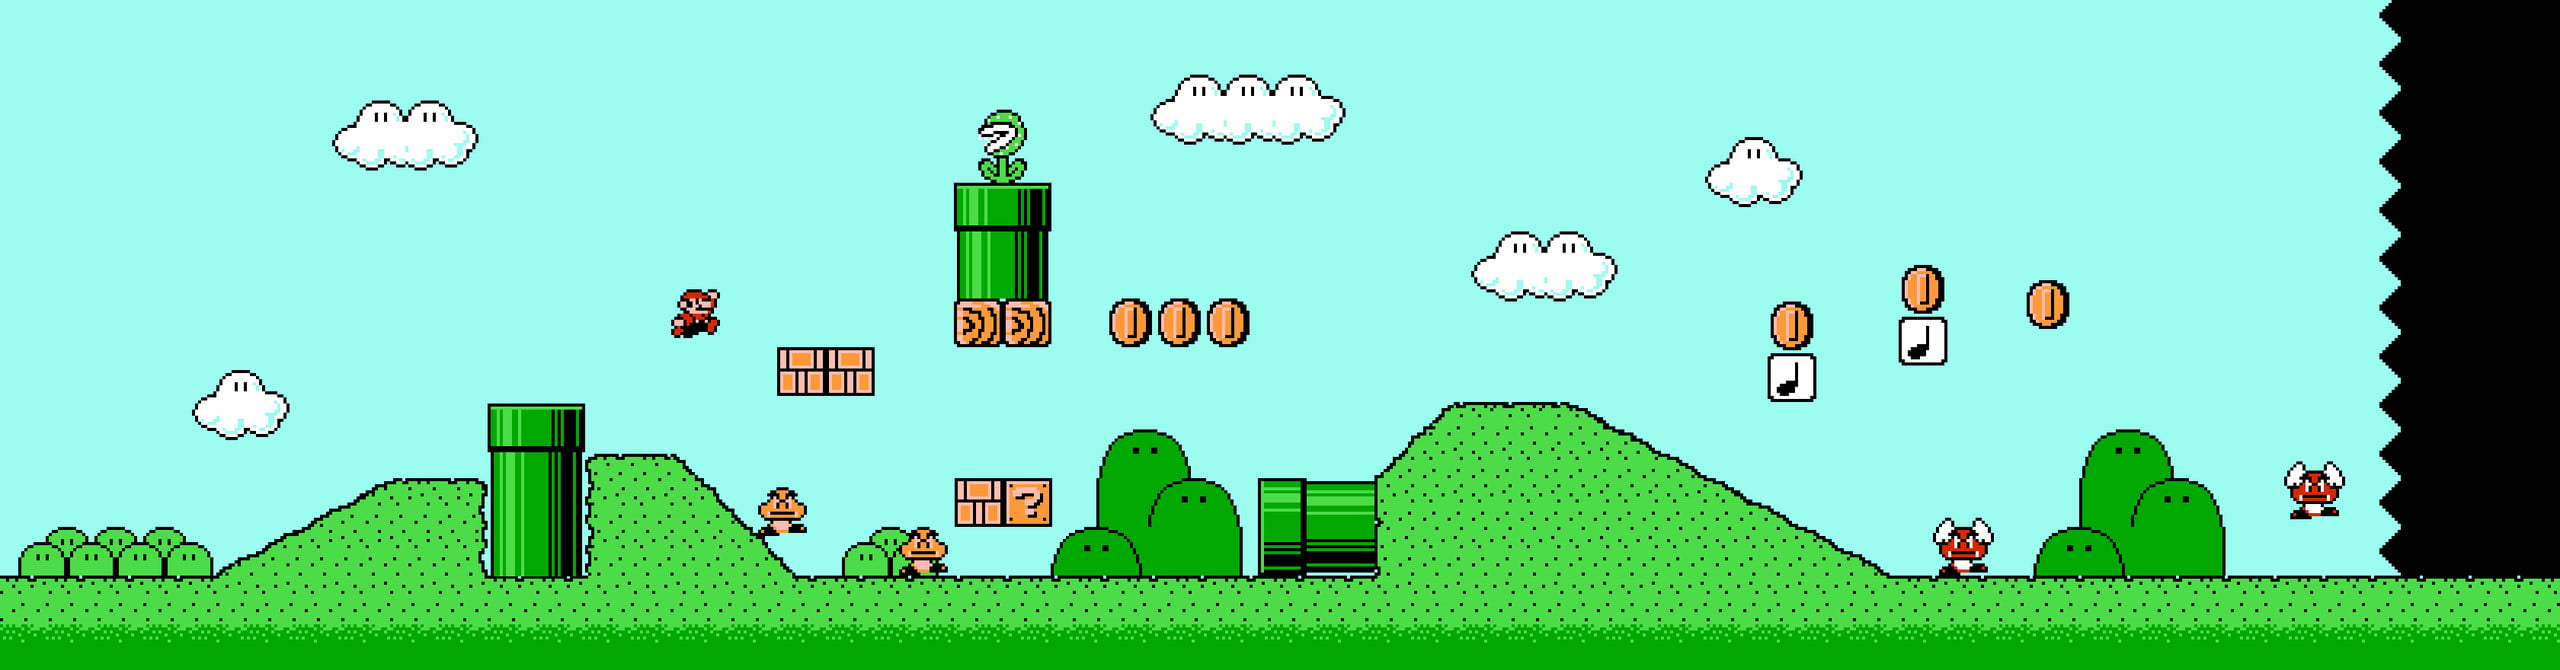 Super Mario Bros 3 Is A Classic But I Couldn T See Past The Art I Hated Digital Trends